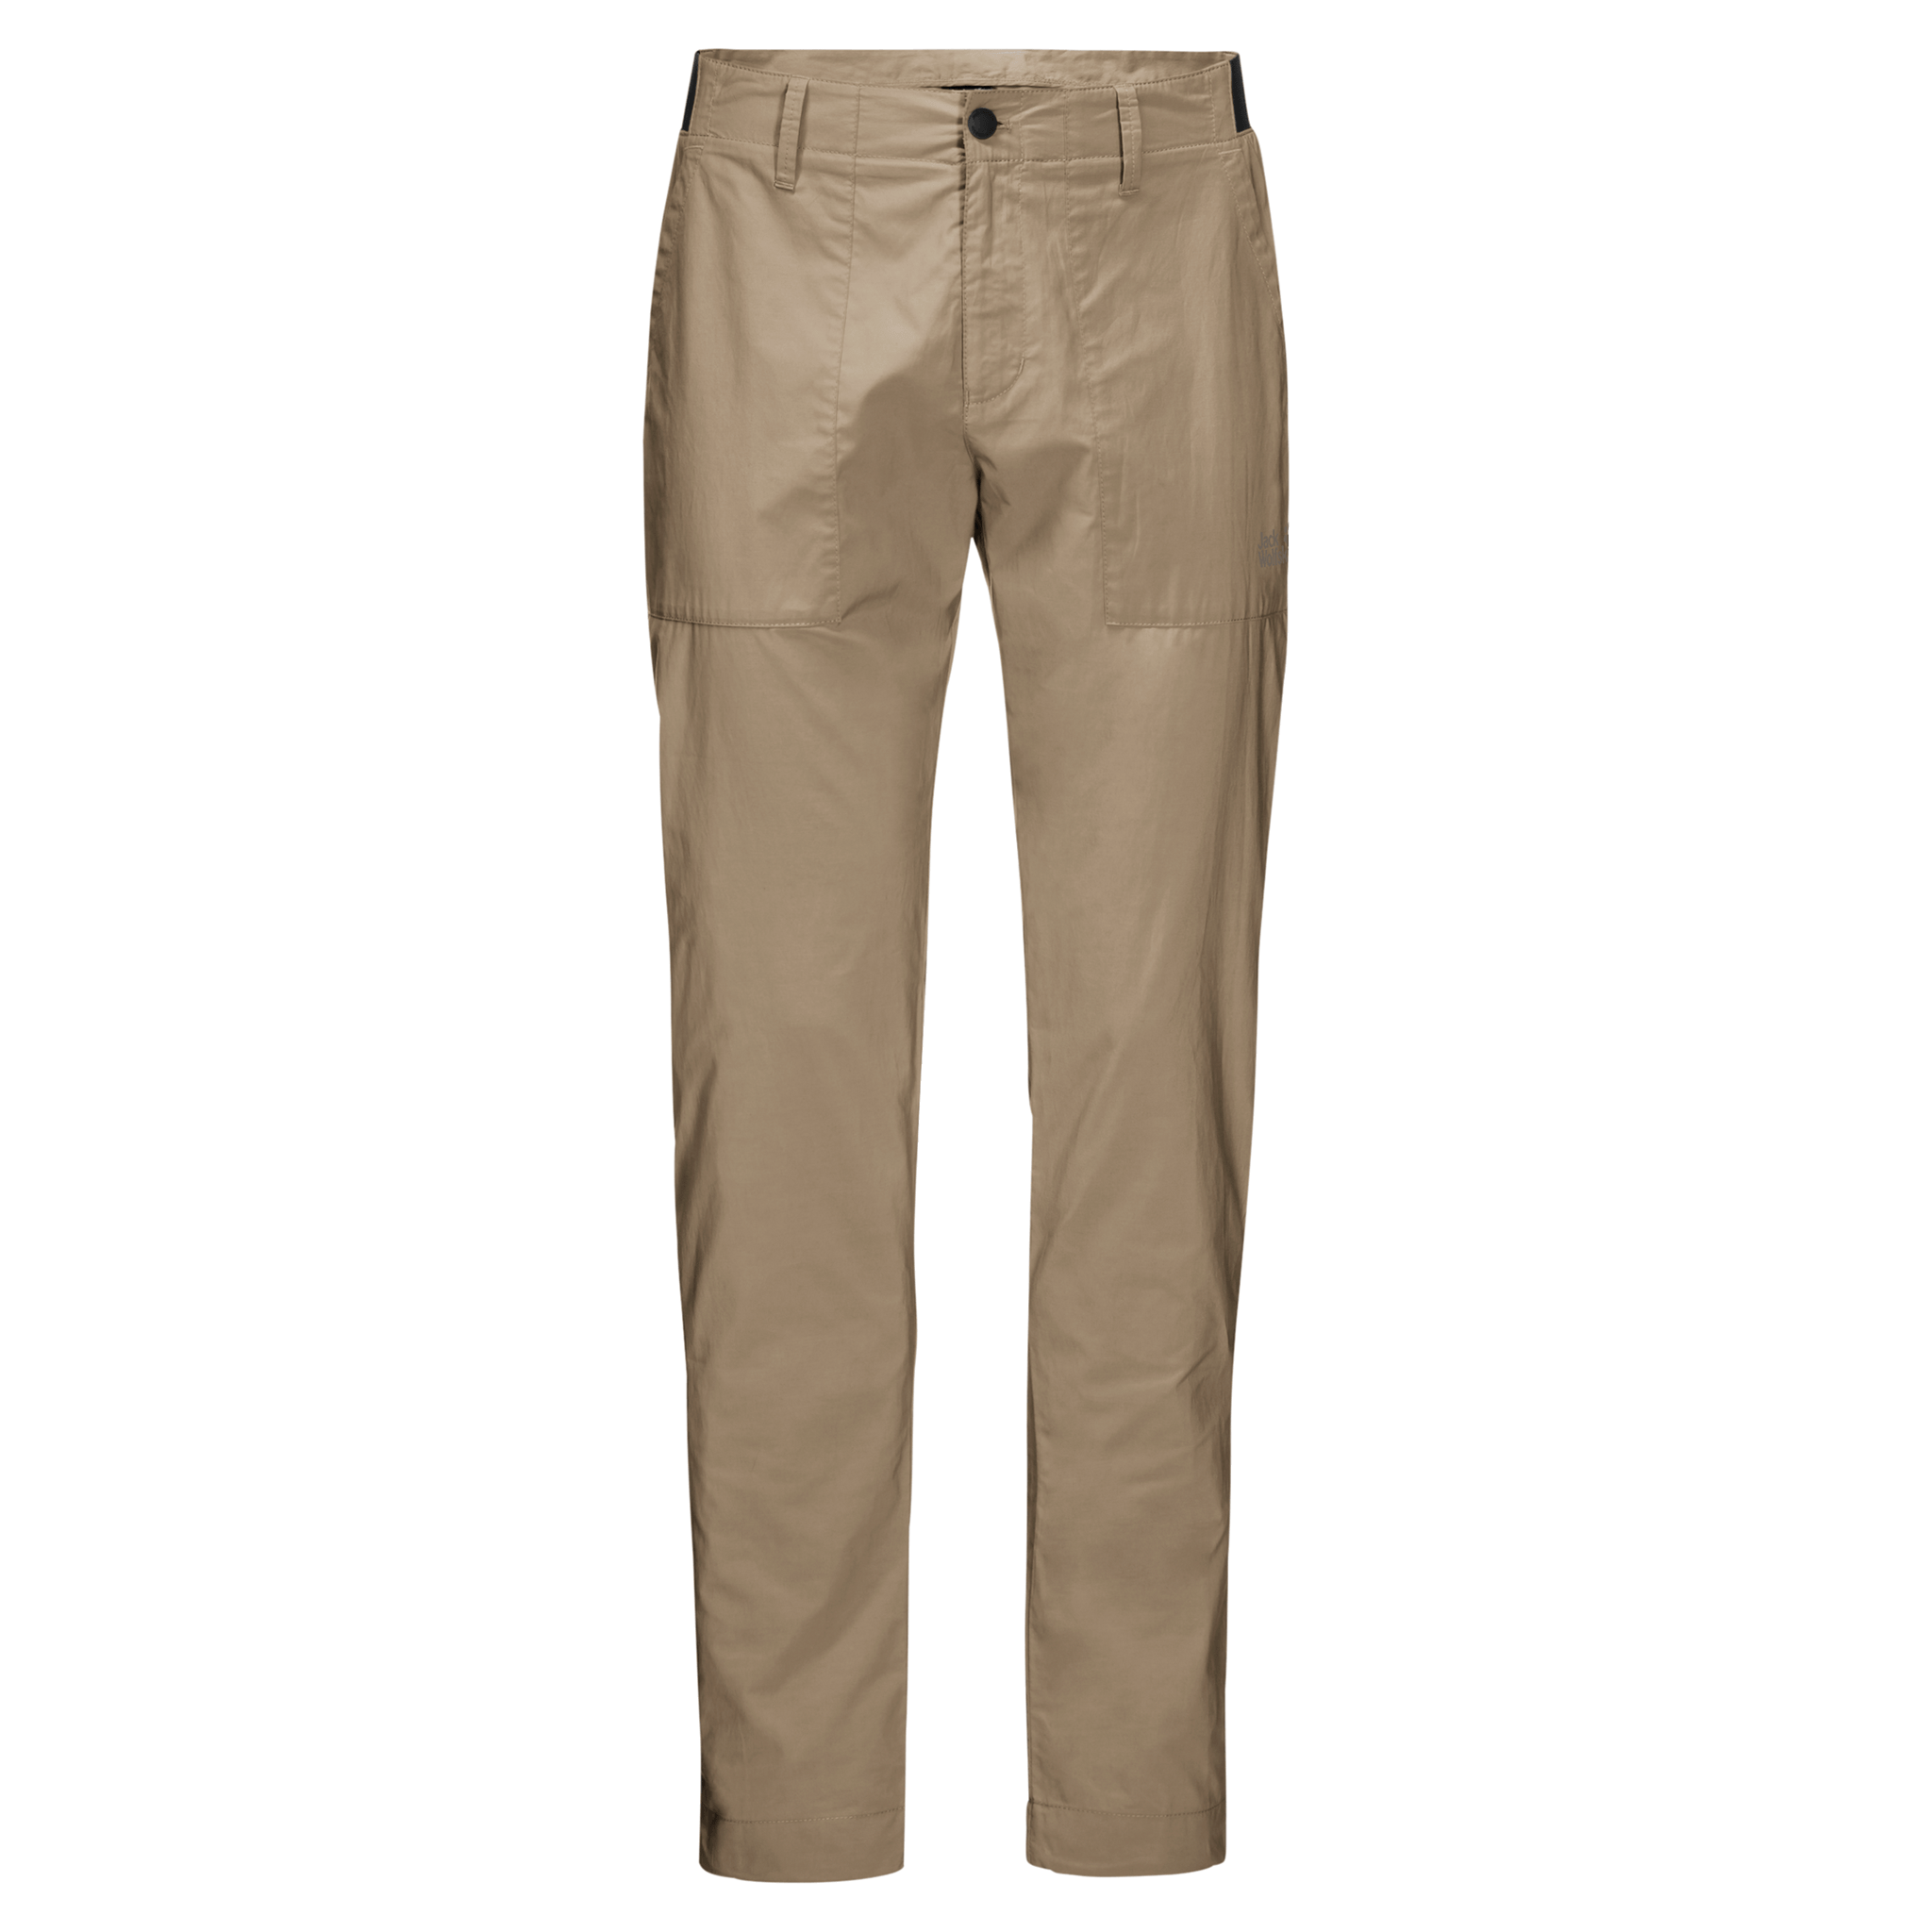 Sand Dune Leisure Pants Men